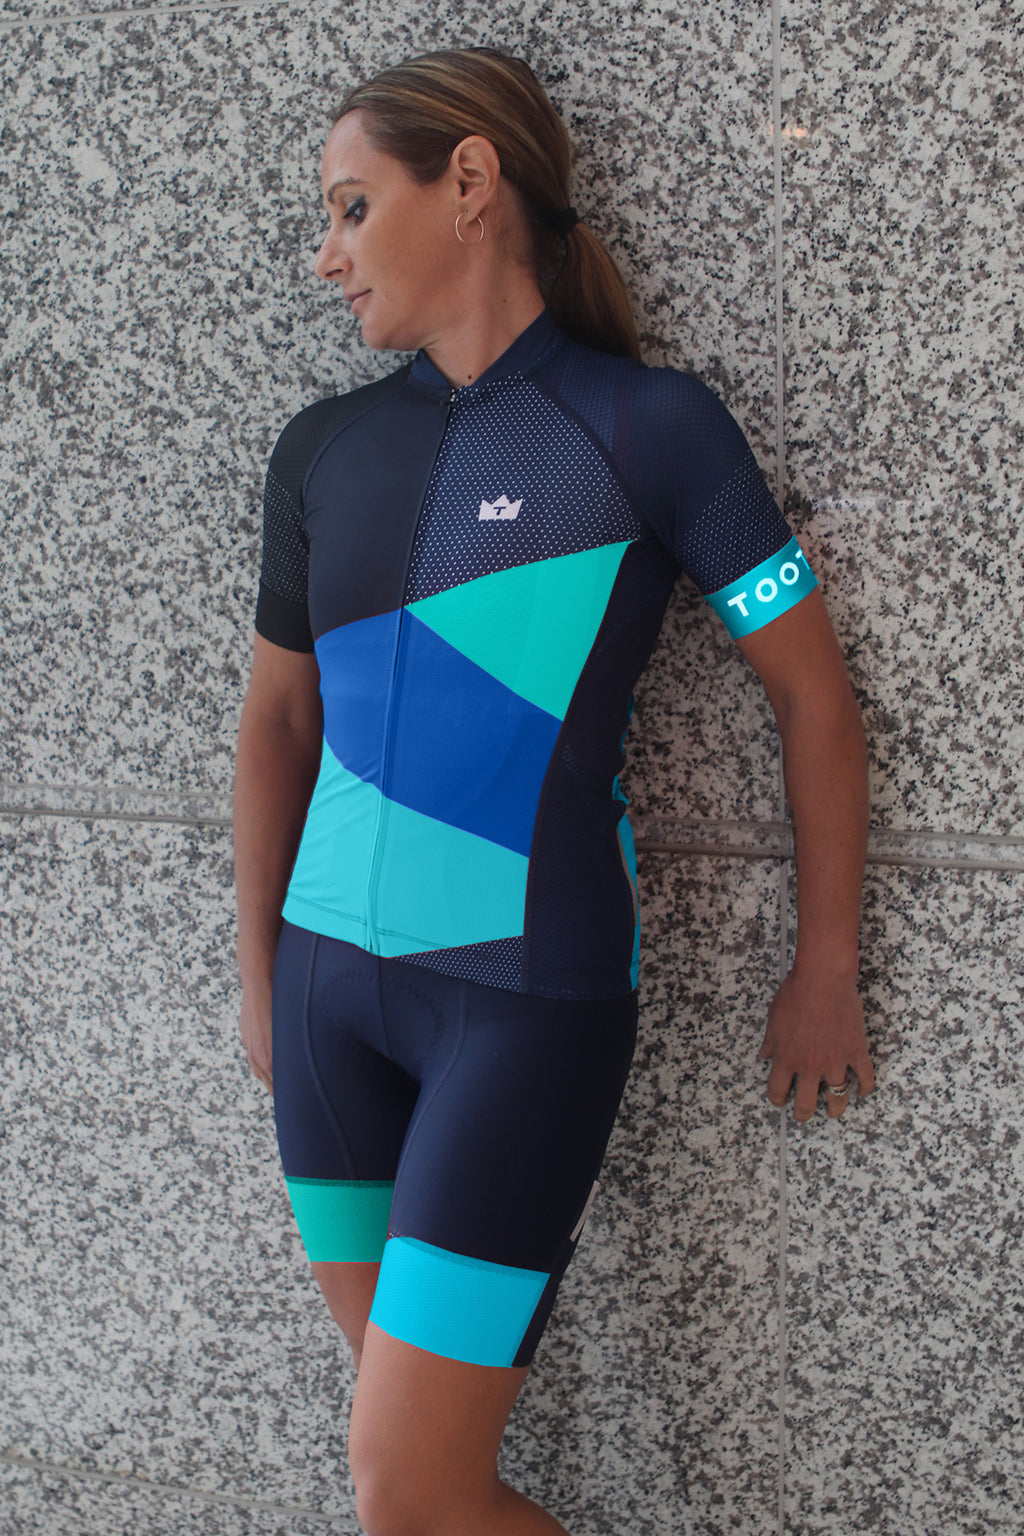 GEO - Limited Edition Womens ProX2 Jersey - Blue/Mint/Teal